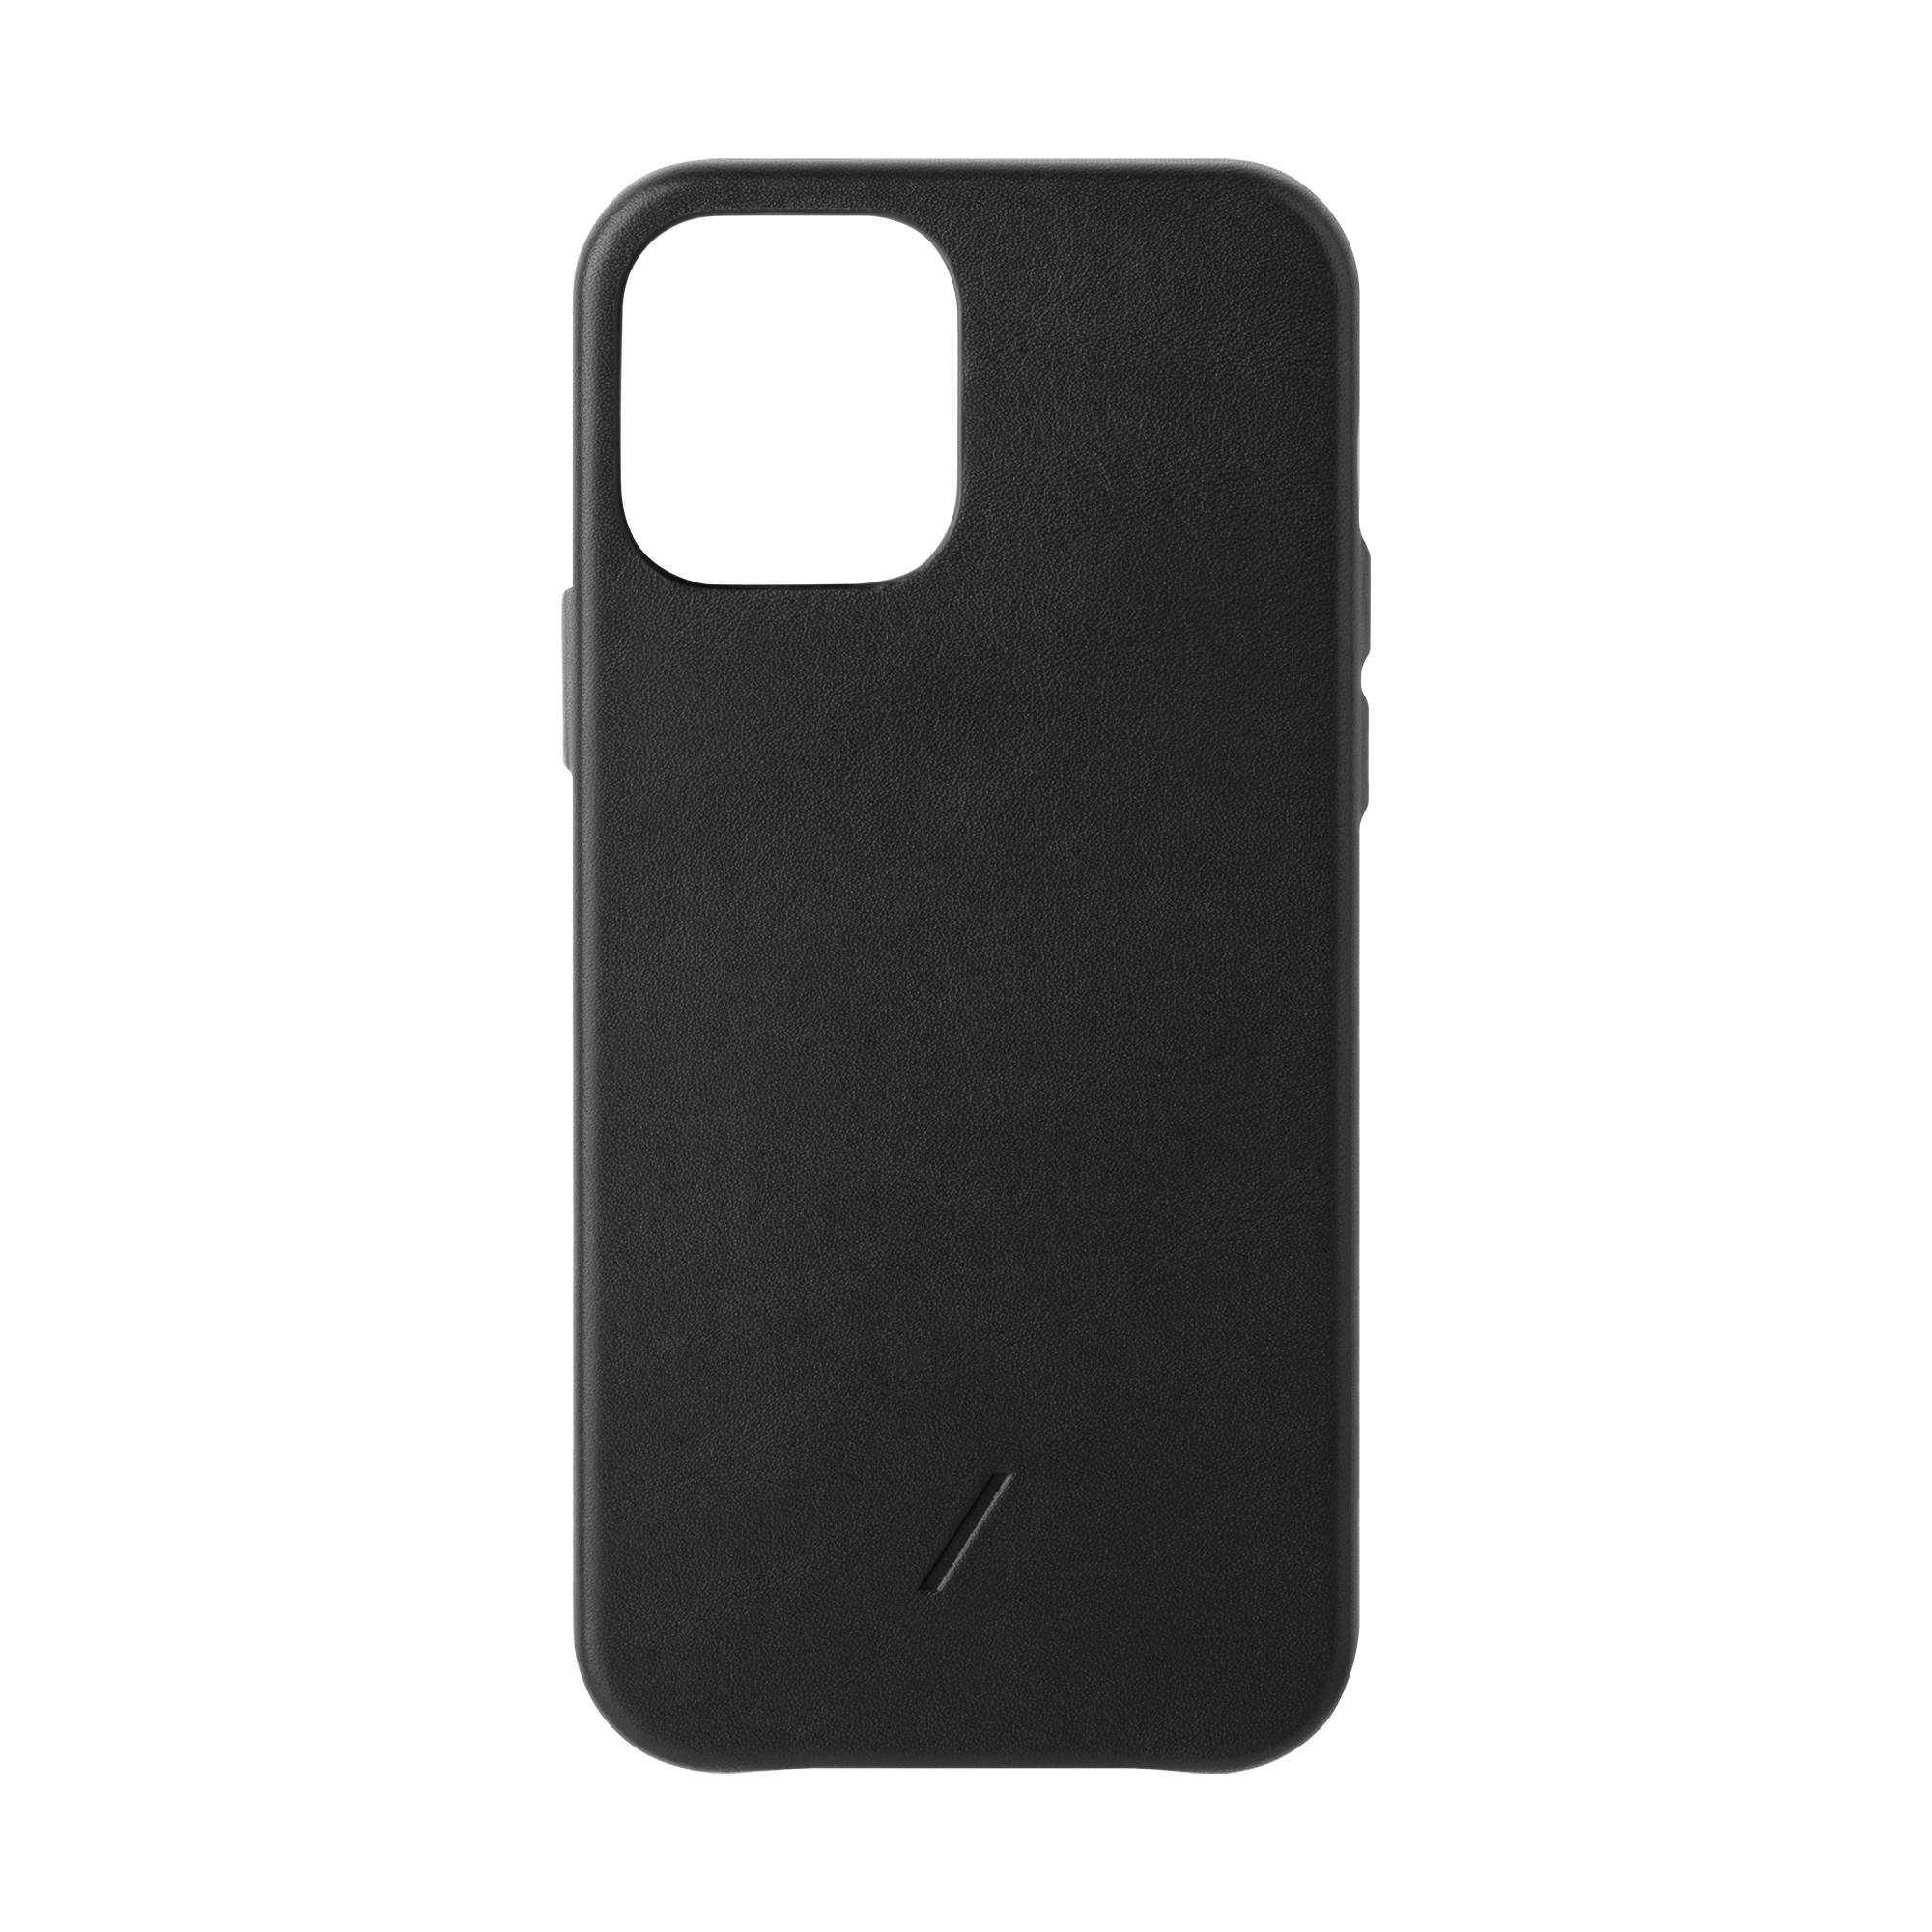 34316689145995,Clic Classic (iPhone 12) - Black